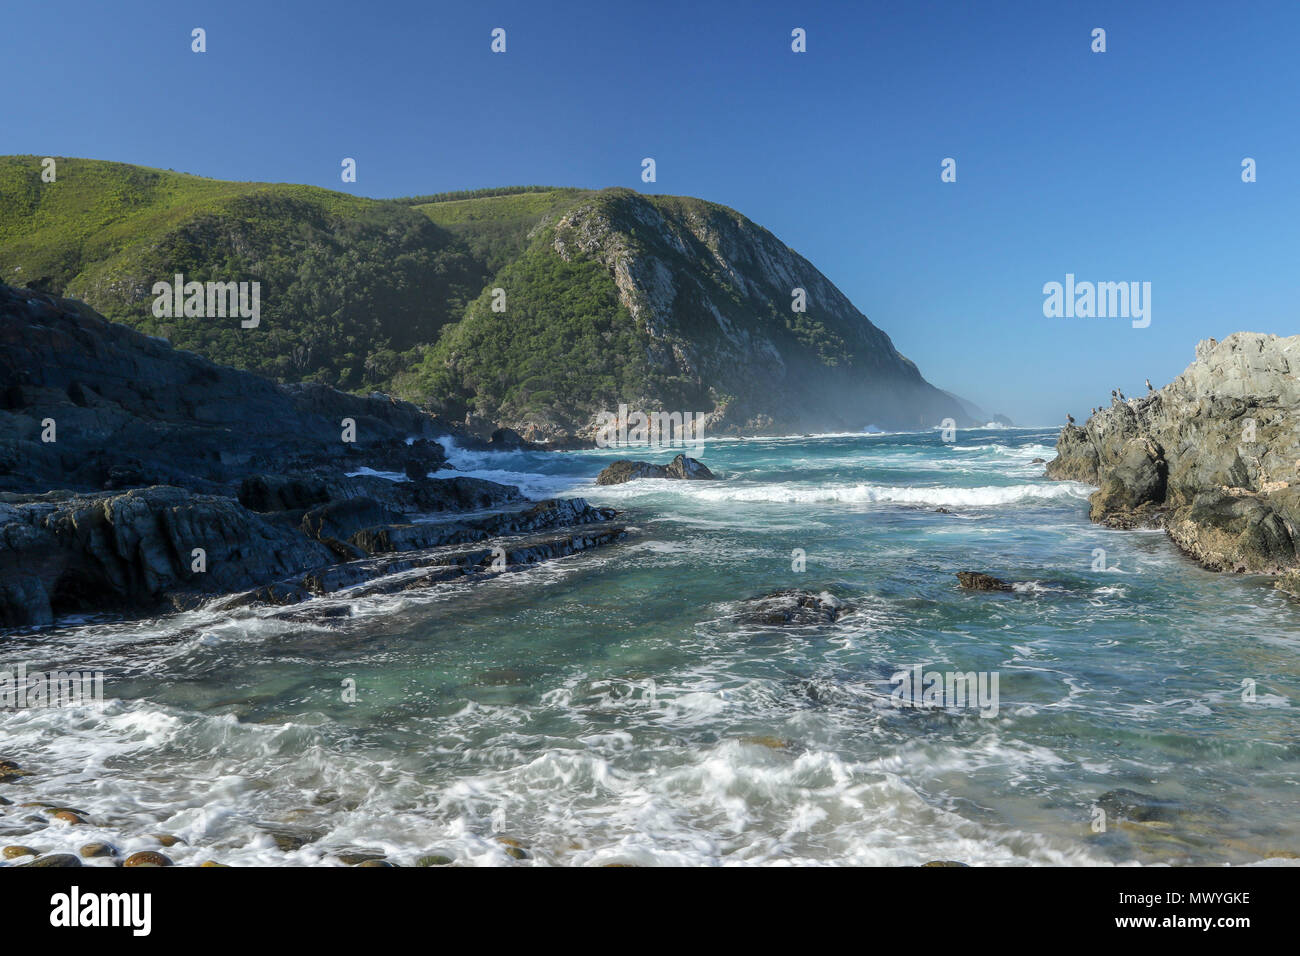 Incoming indian ocean tide with storms river mouth in the background from the Tsitsikamma National Park, garden route, Cape, south africa - Stock Image